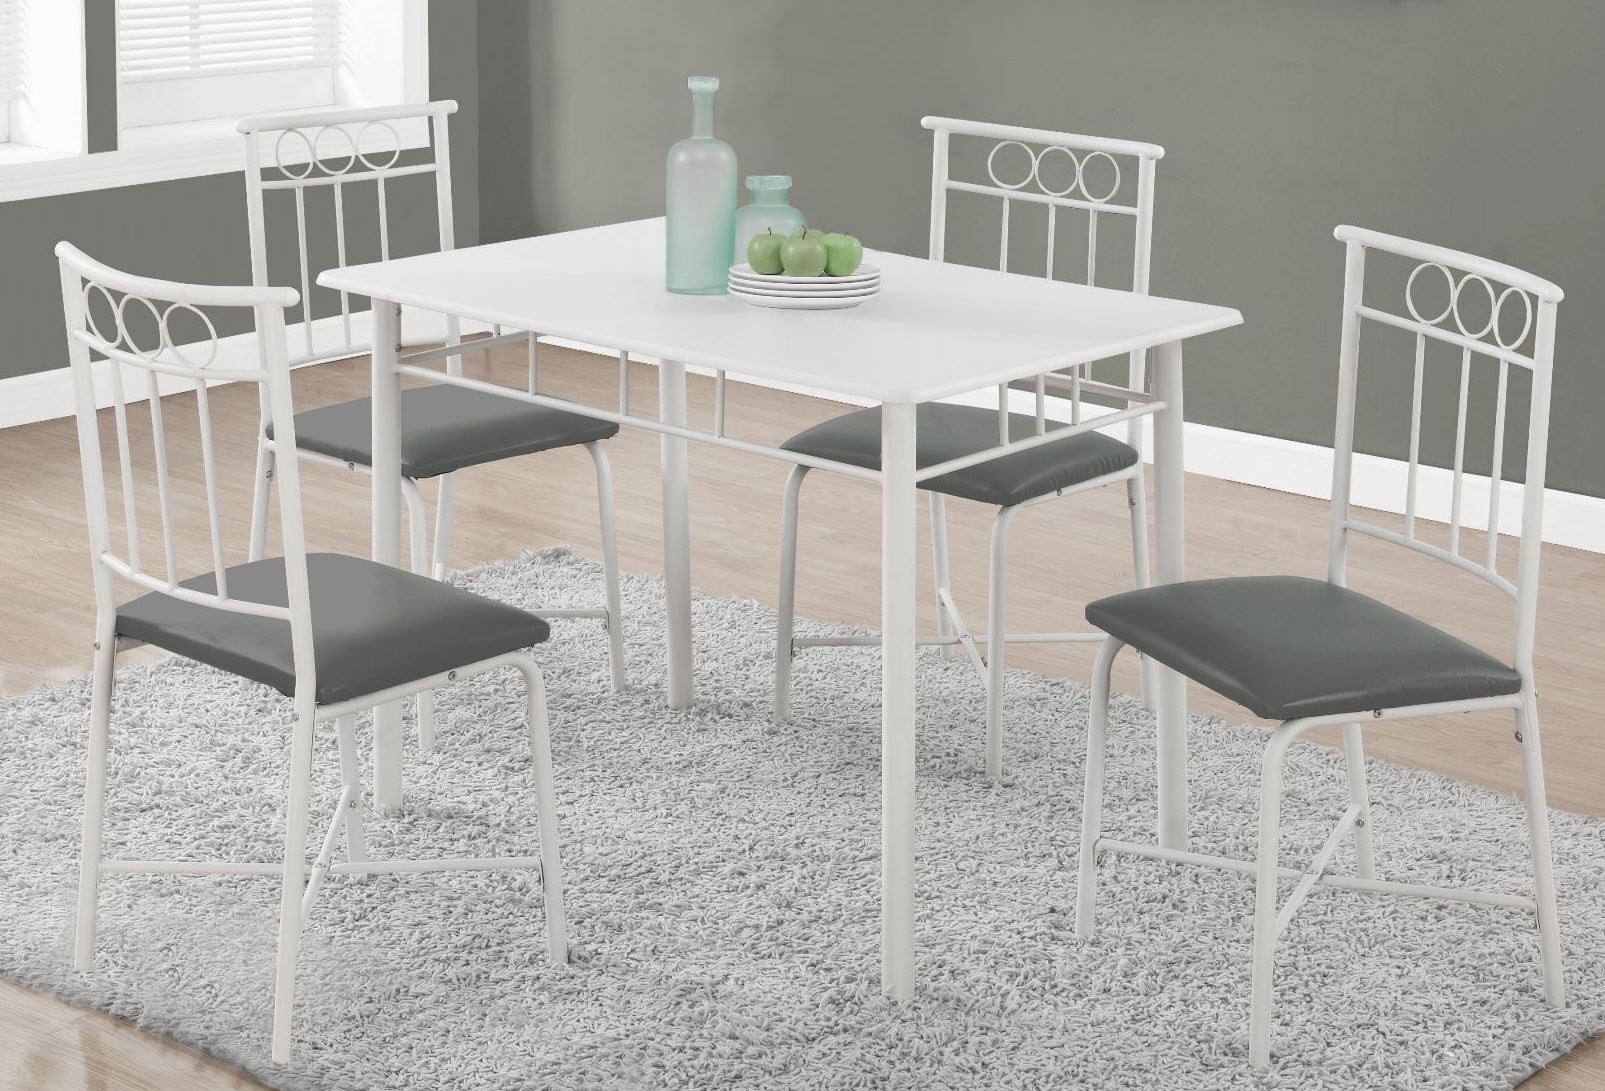 metal dining room sets | 1019 White Metal 5 Piece Dining Room Set, 1019, Monarch